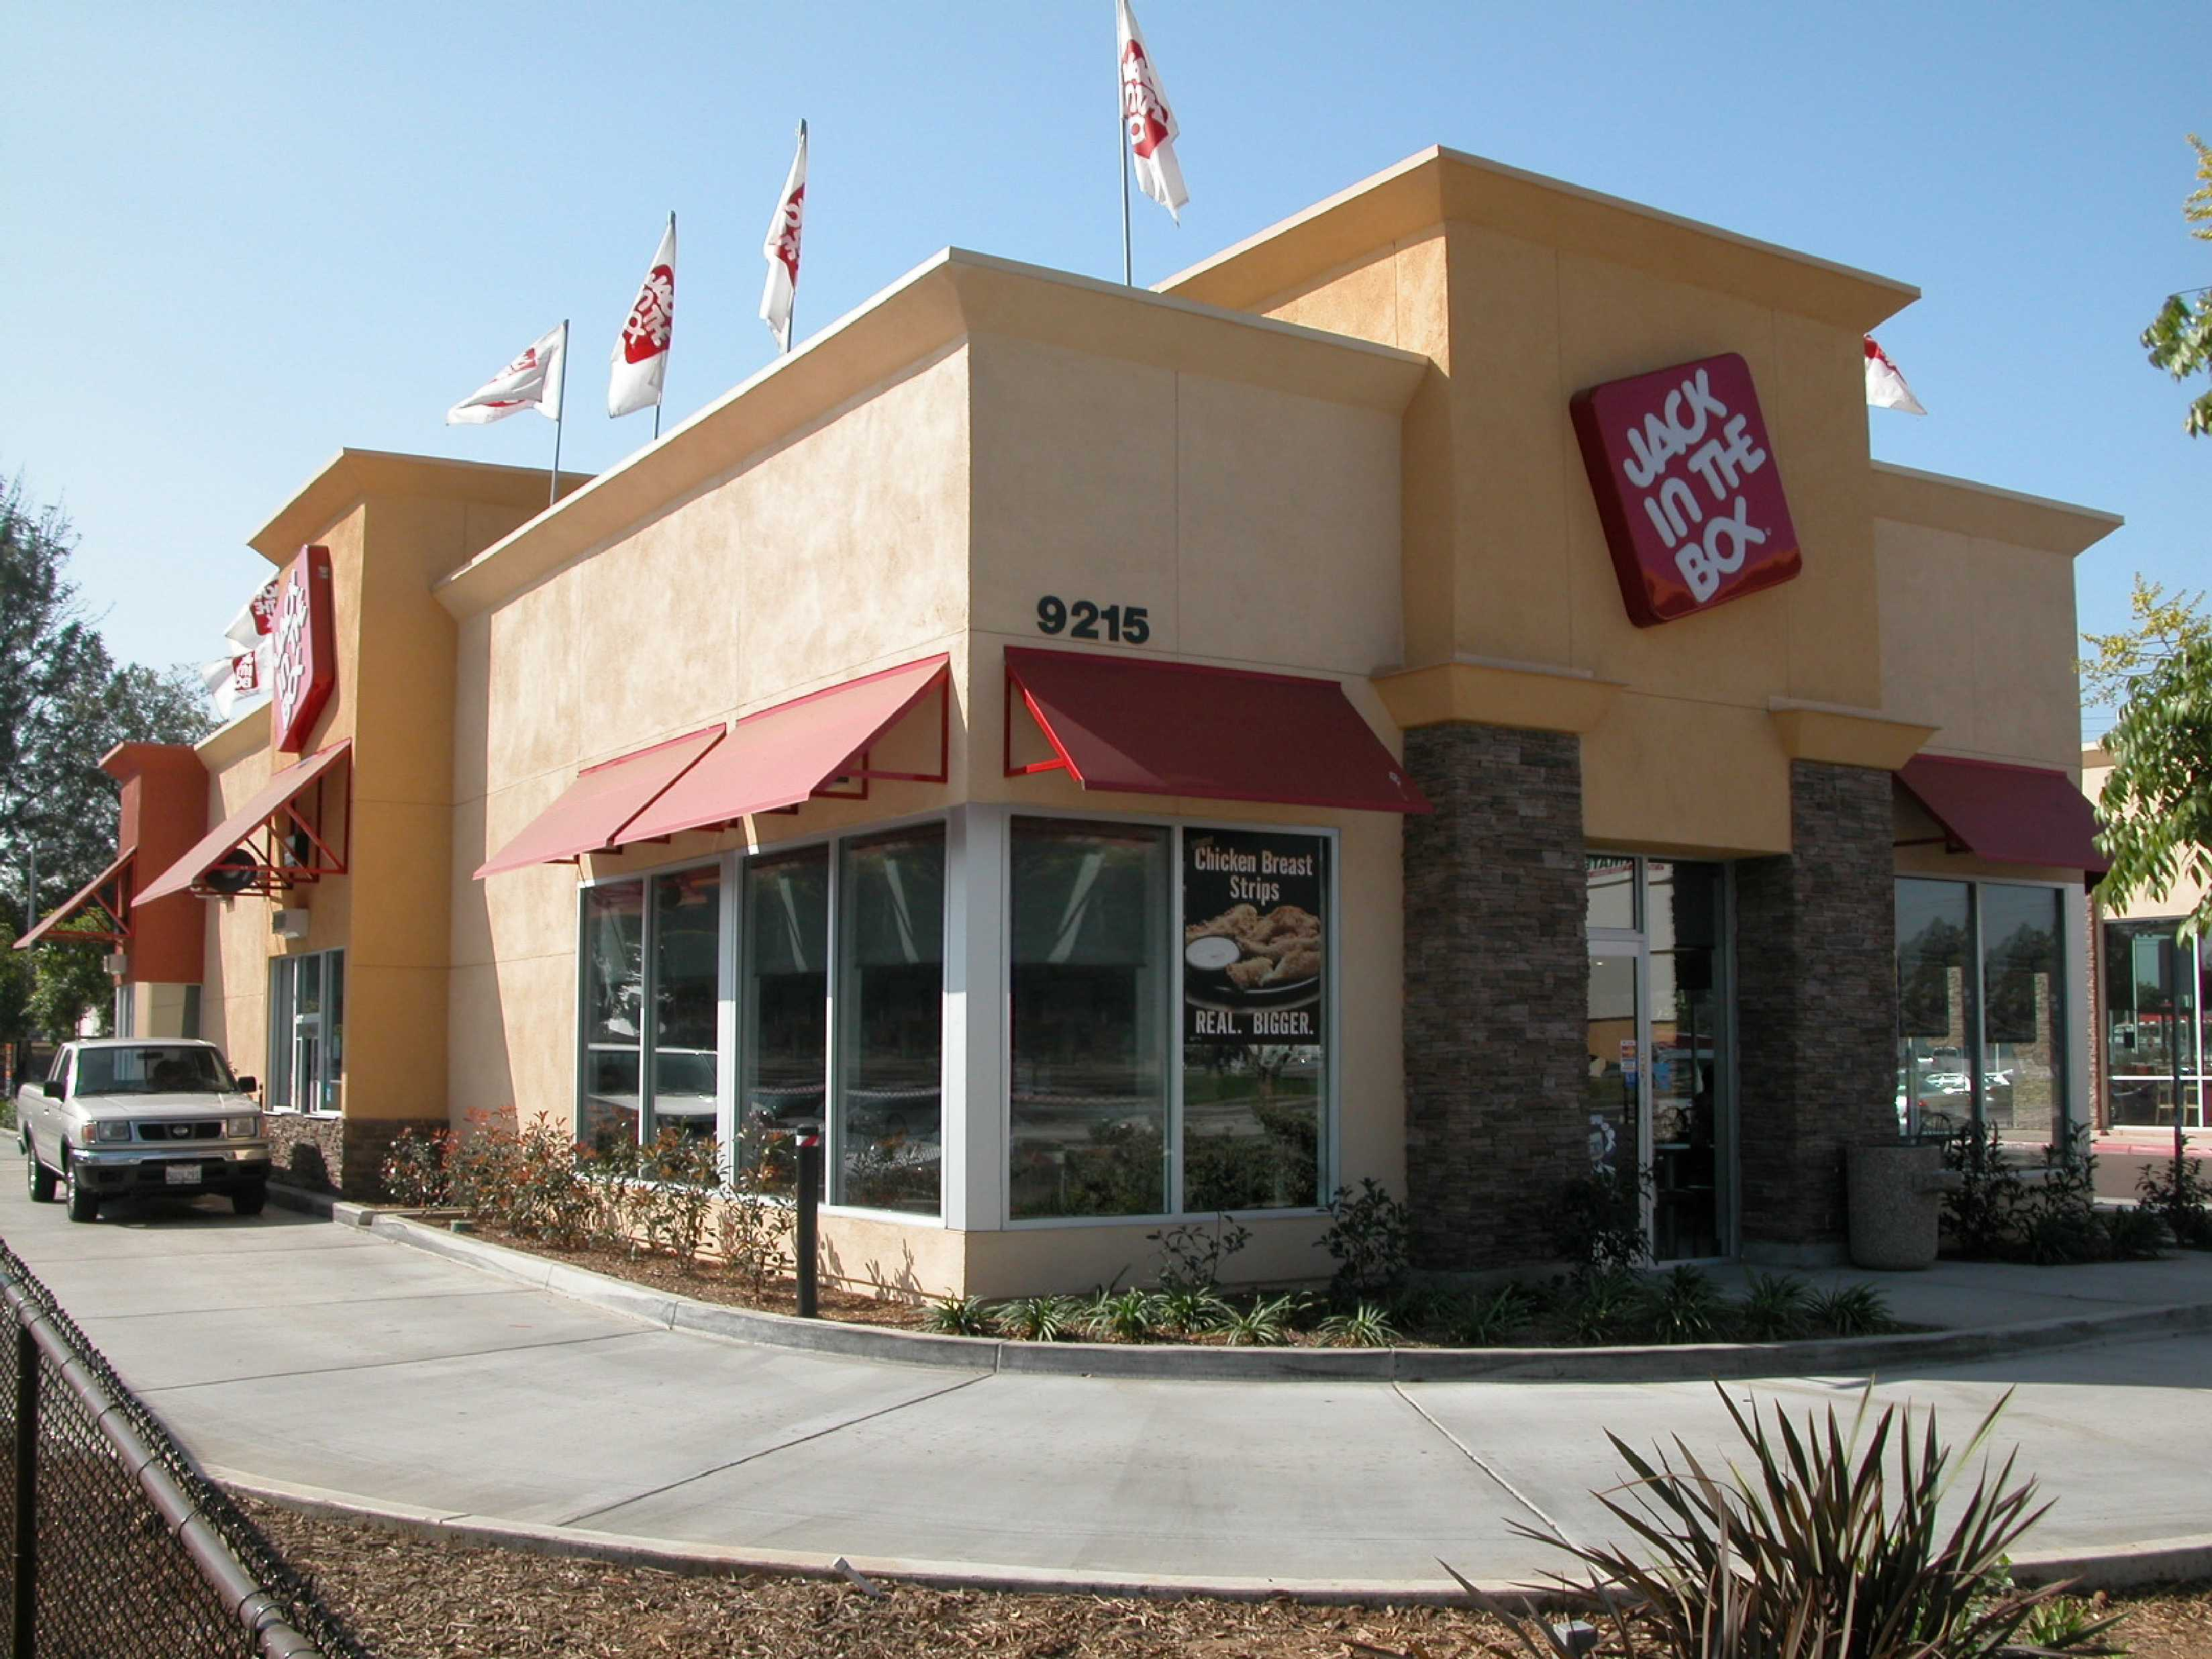 Jack in the Box outside